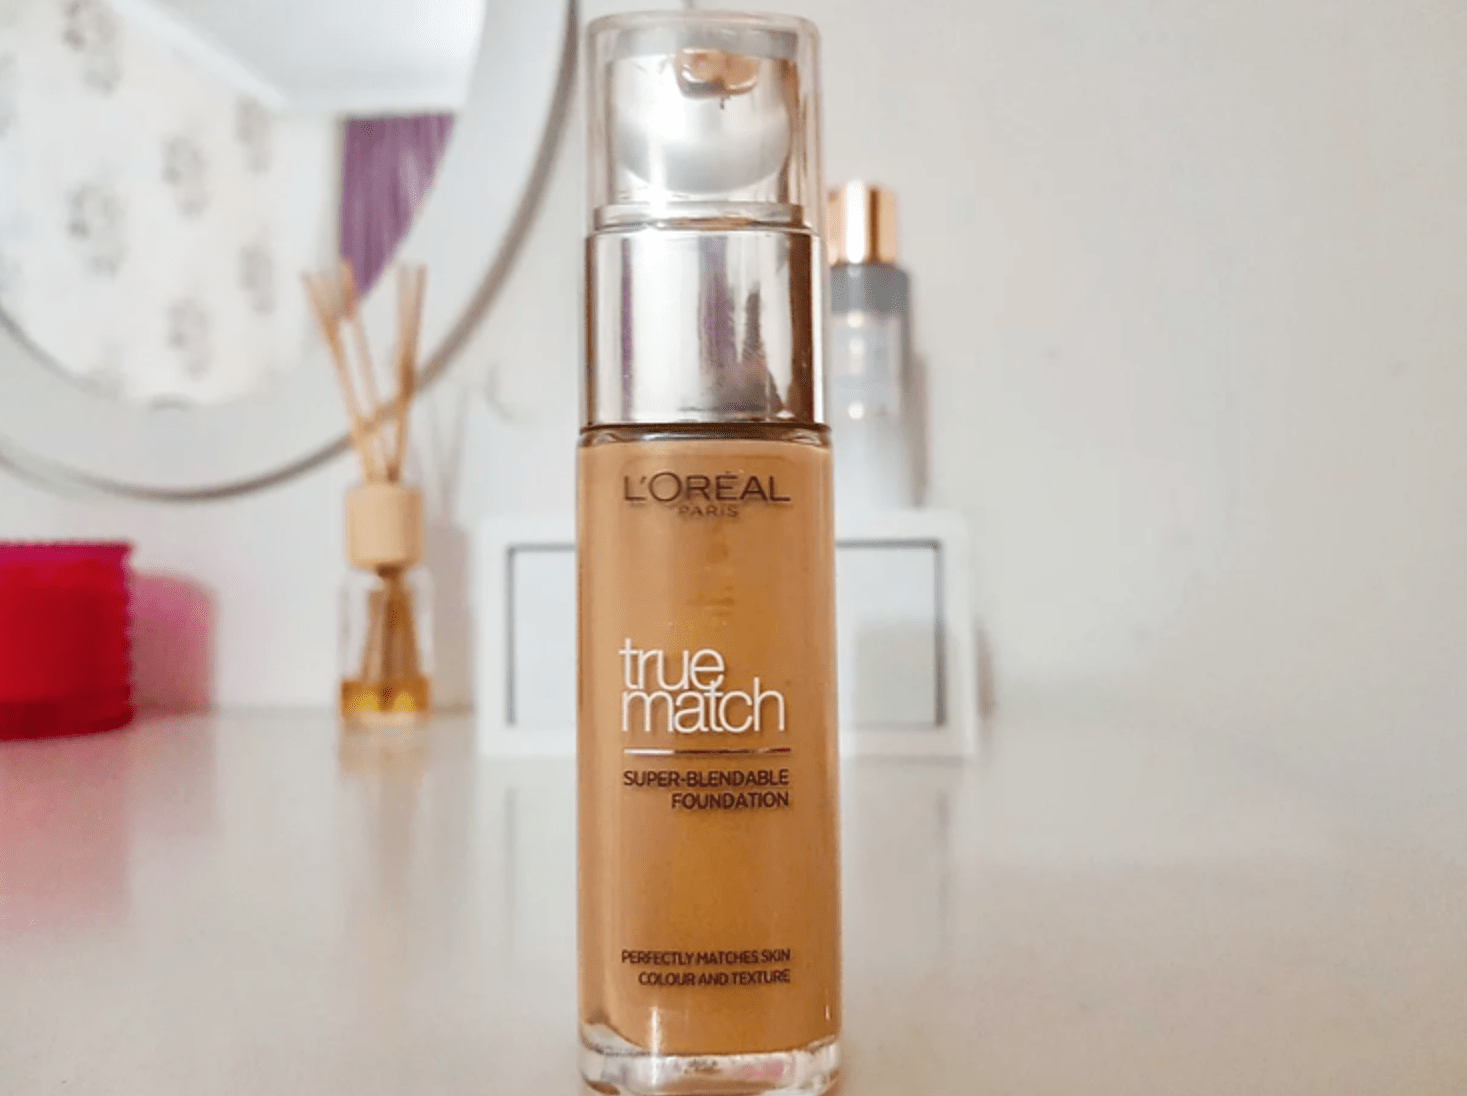 loreal truematch dark skin foundation, on a white glossy table top with a reed diffuser and mirror behind it.